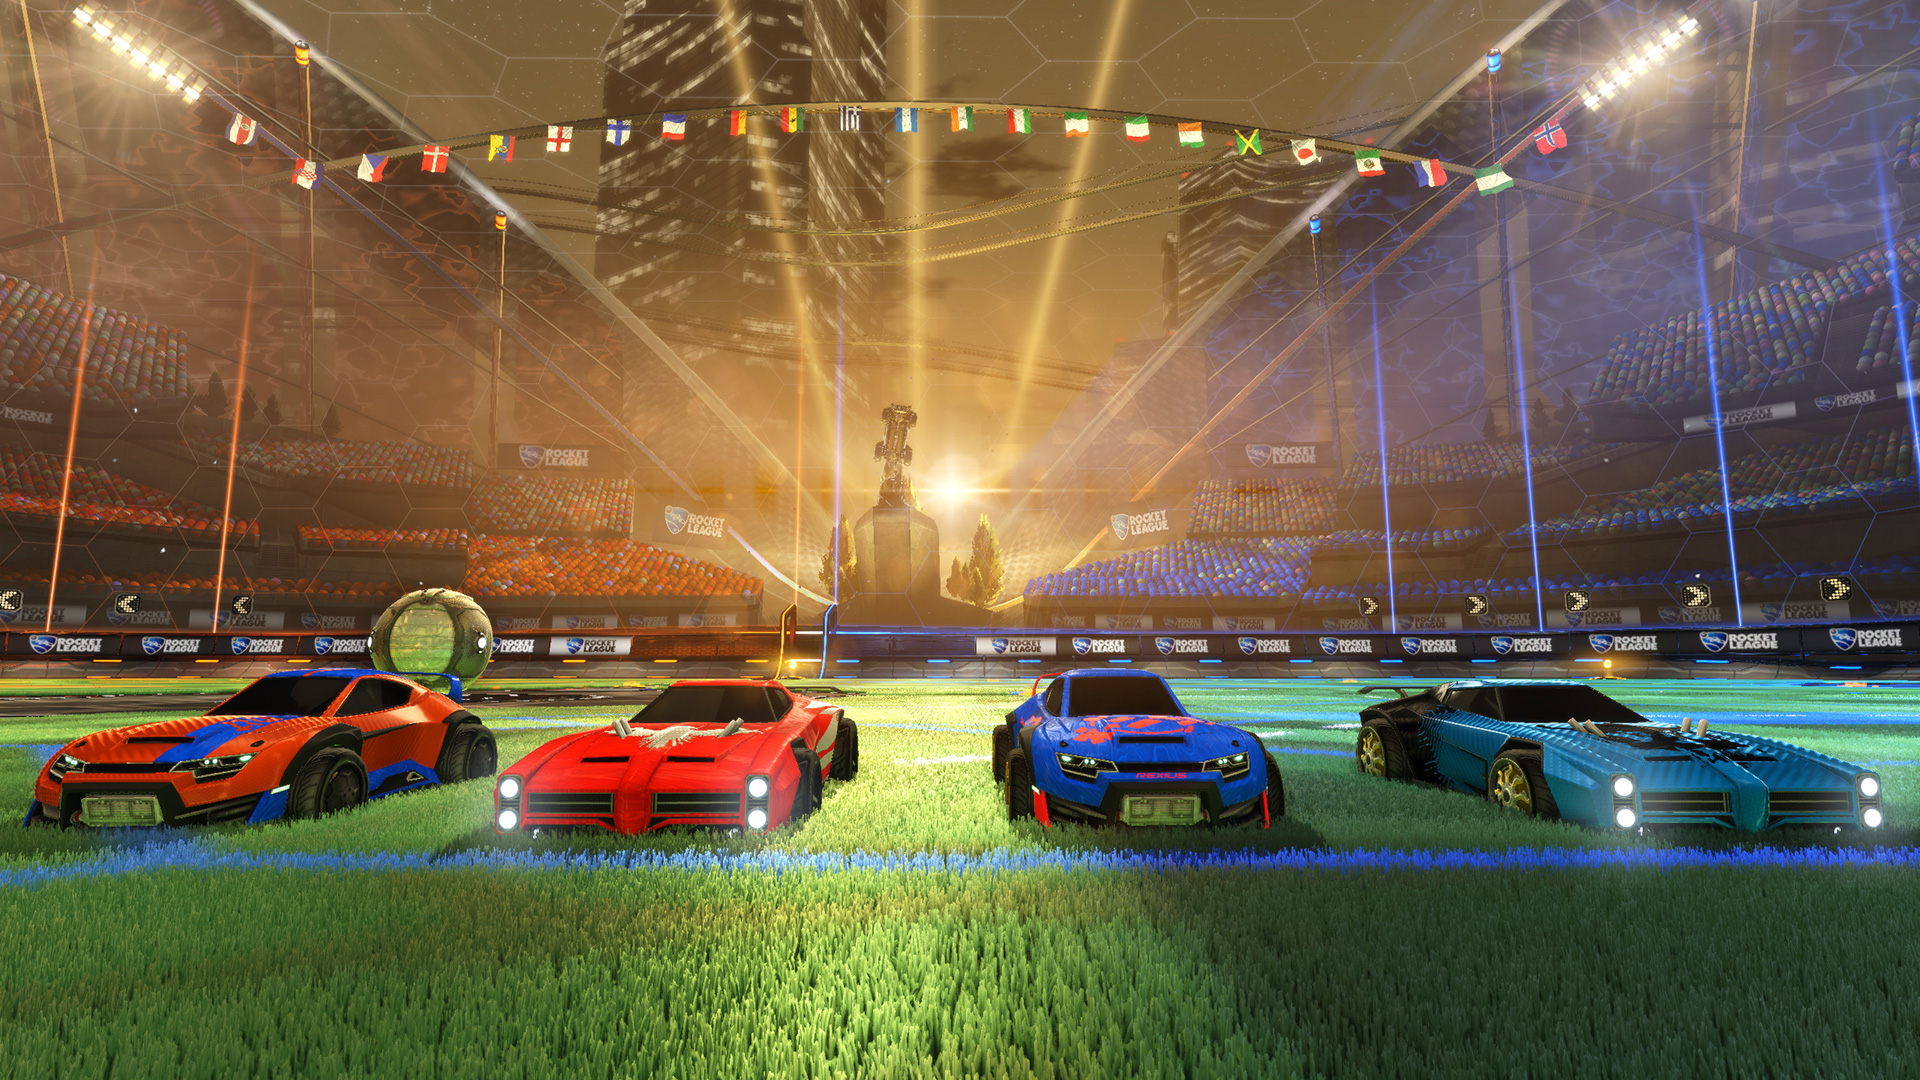 Epic Games adquiere Psyonix, desarrollador de Rocket League